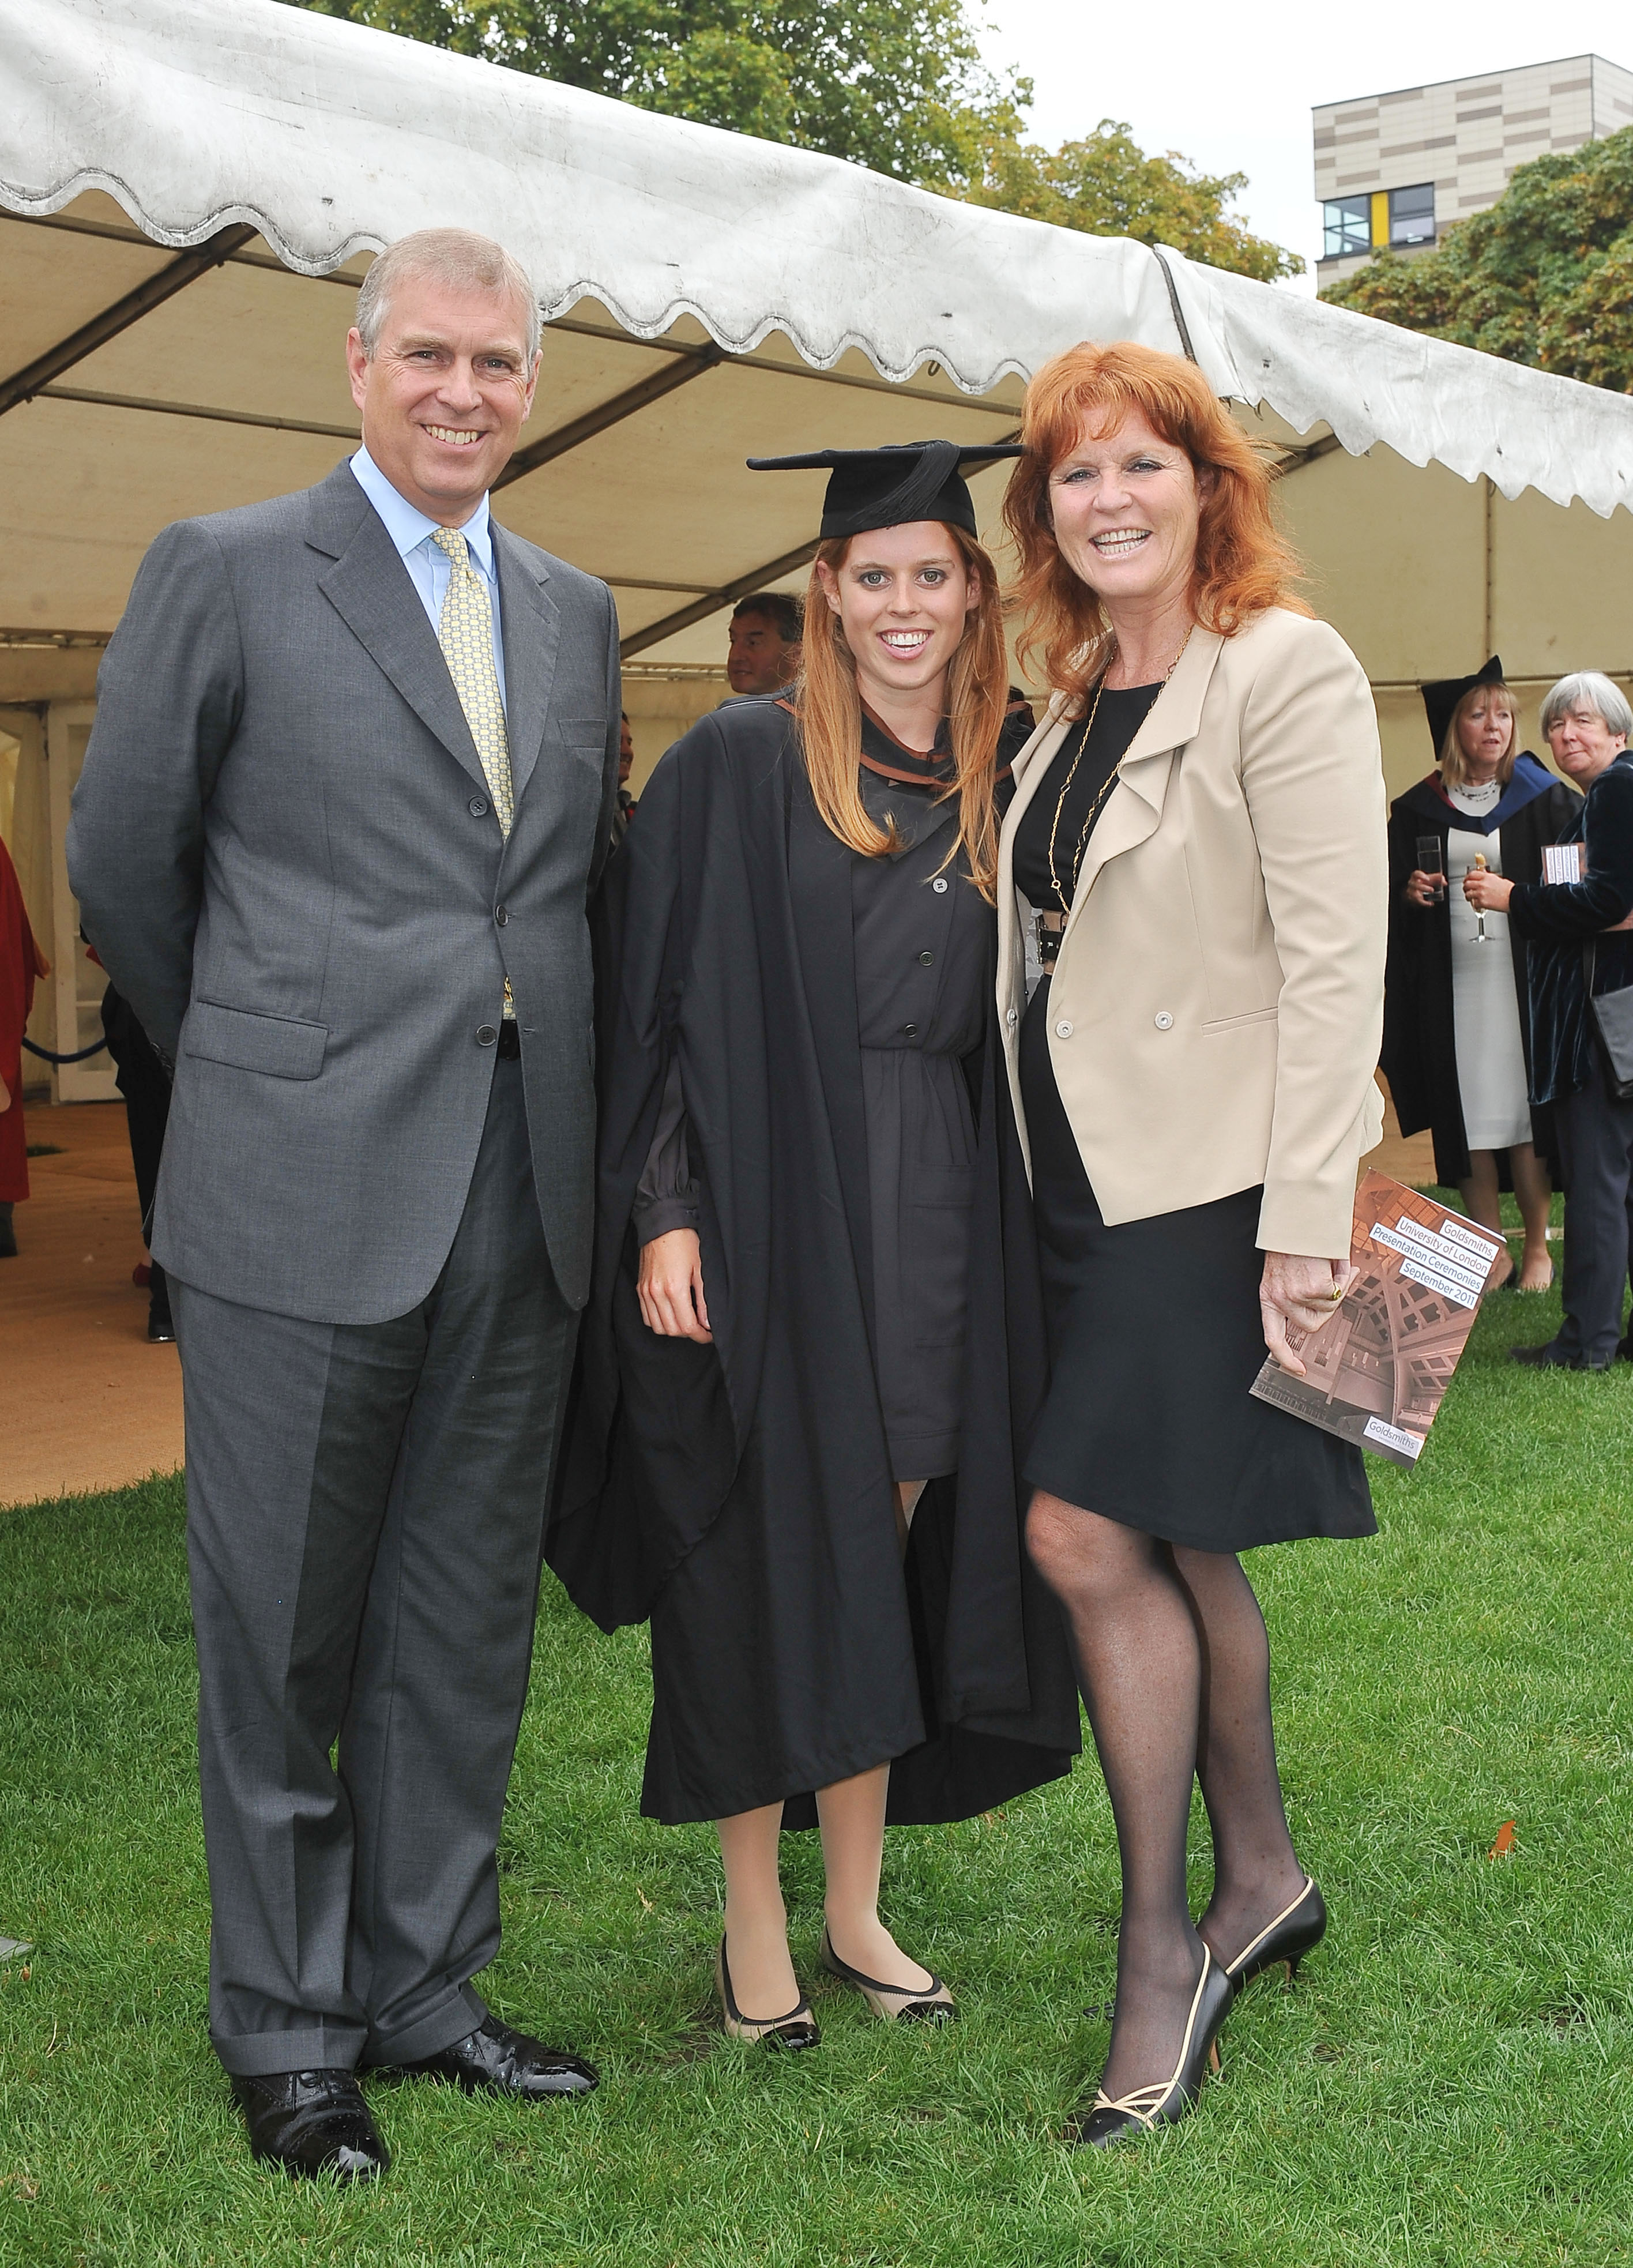 Prince Andrew, Duke of York (L), Sarah, Duchess of York (R) and their daughter, Princess Beatrice, following her graduation ceremony at Goldsmiths College on September 9, 2011 in London, United Kingdom. (Photo by Ian Nicholson - WPA Pool/Getty Images)